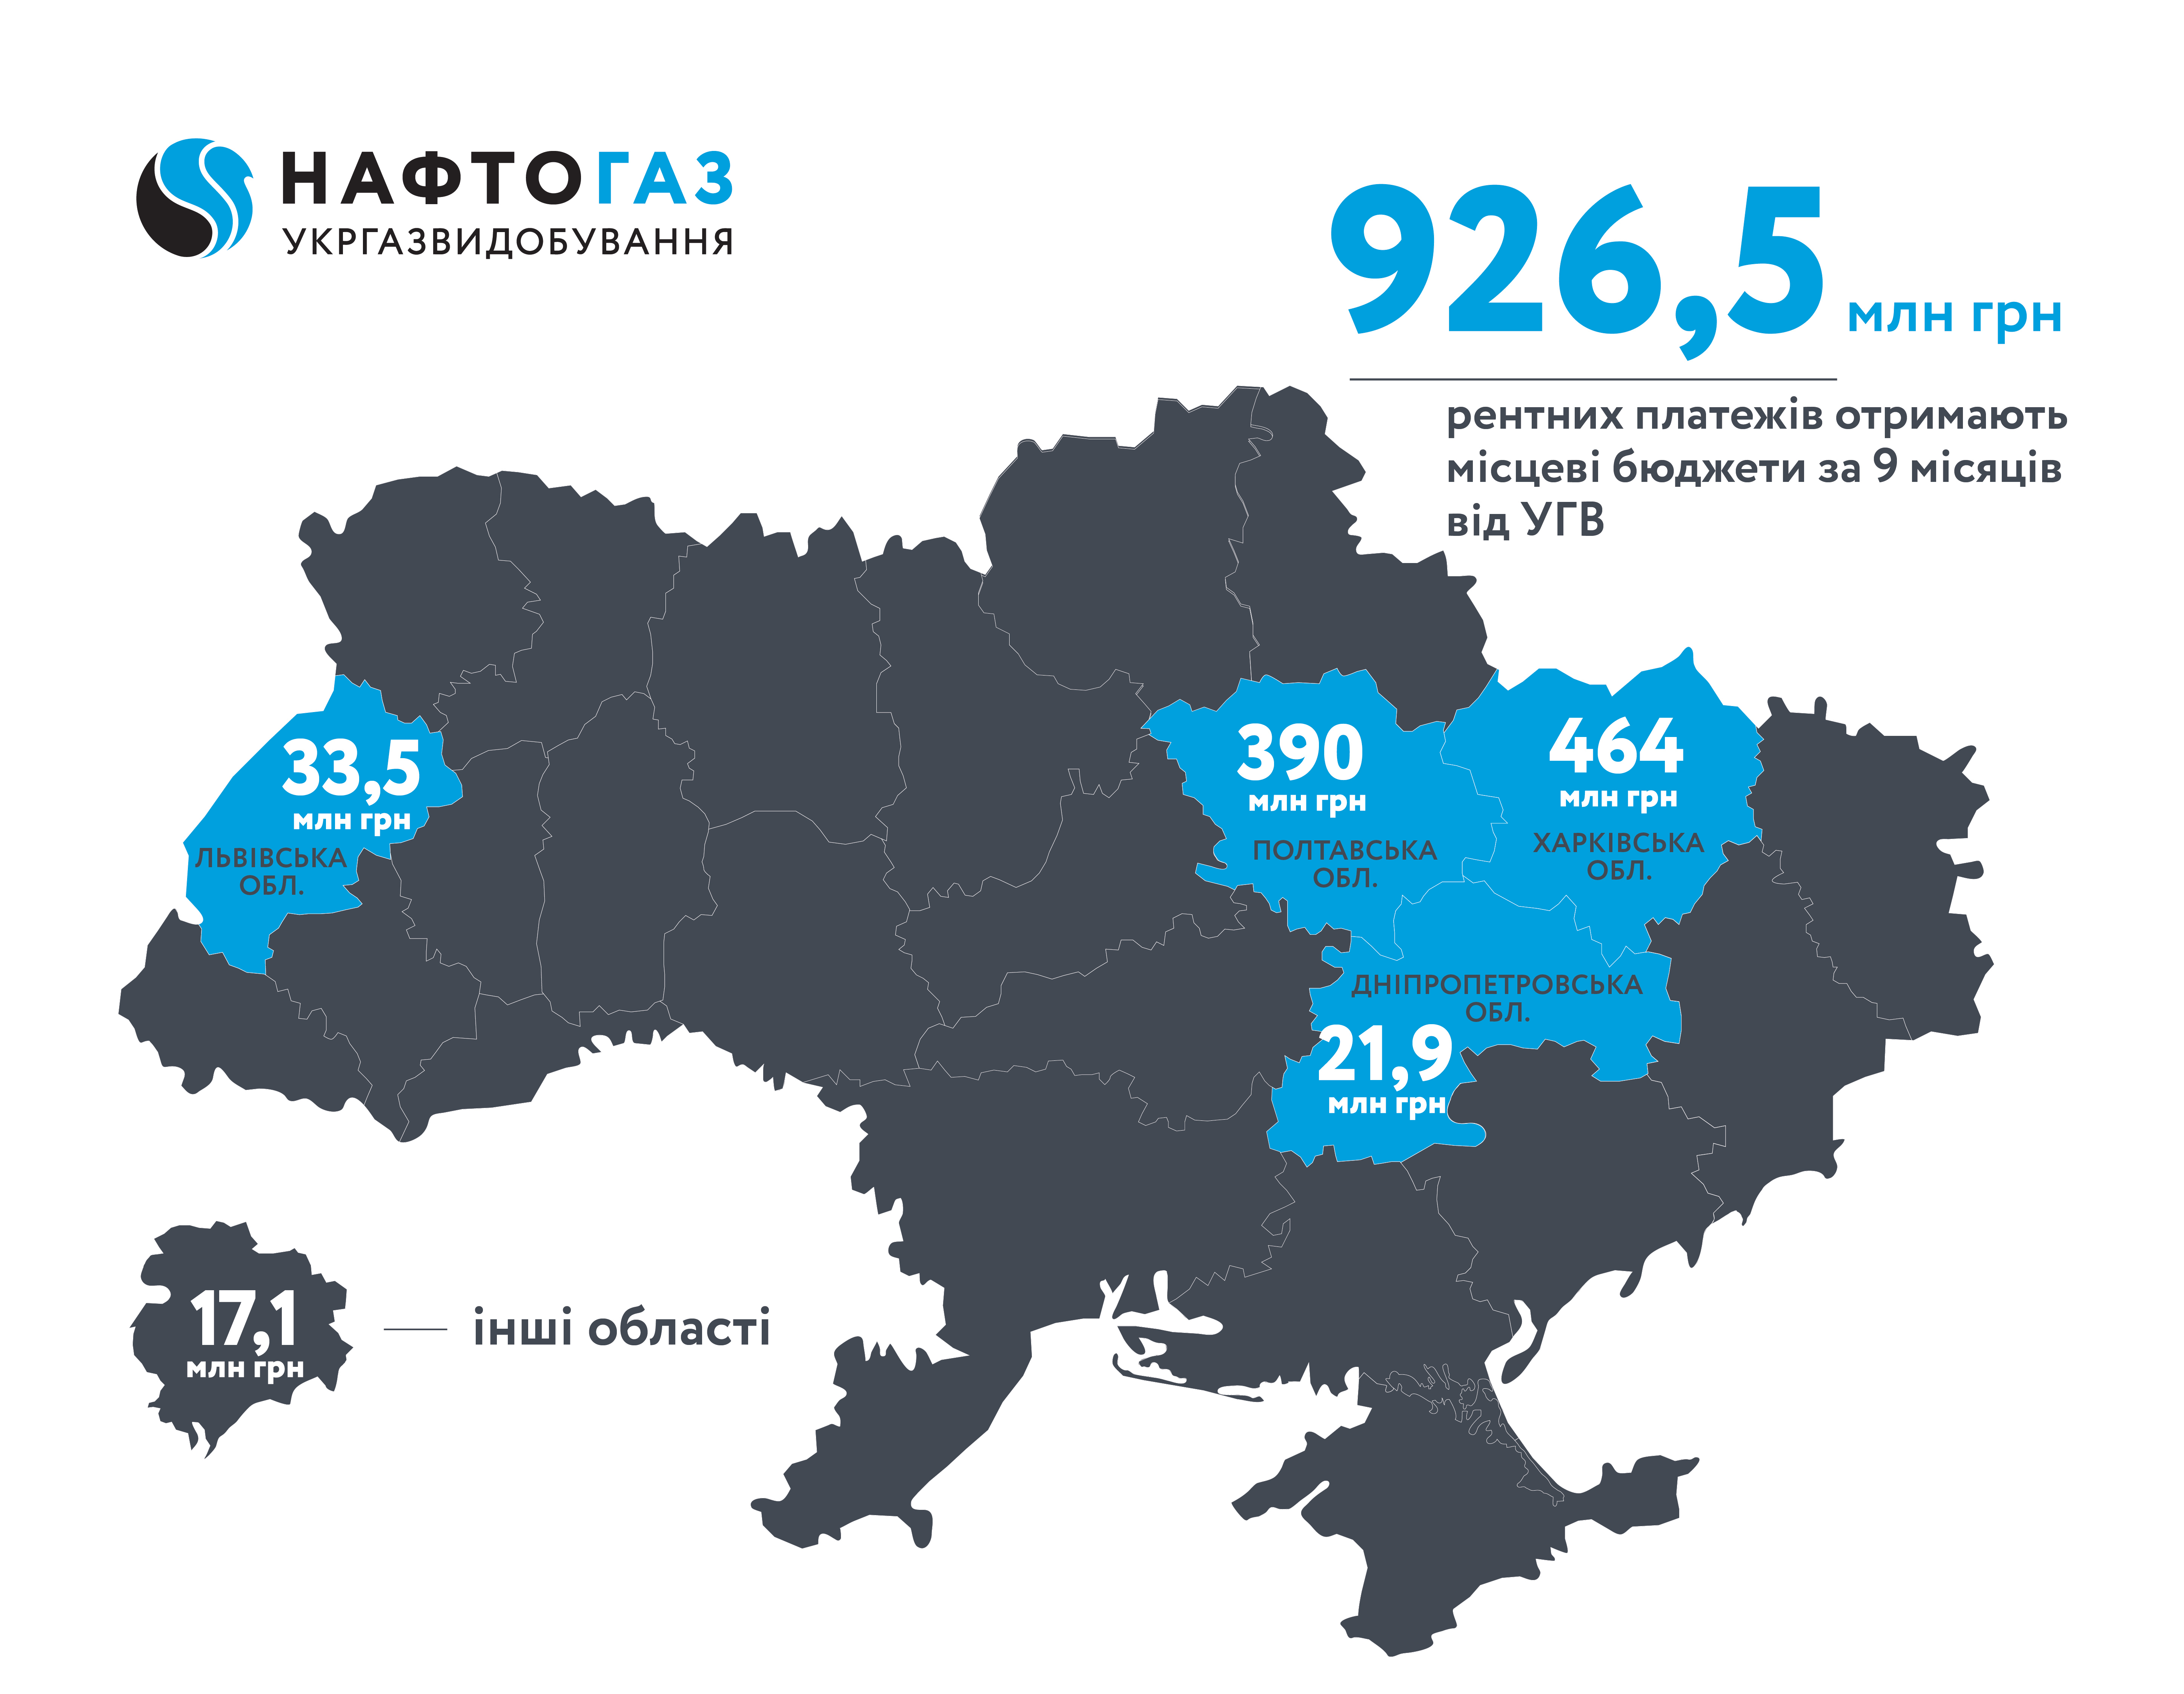 For nine months of 2019, Ukrgasvydobuvannya transferred more than UAH 926 mln. of rent payments to local budgets